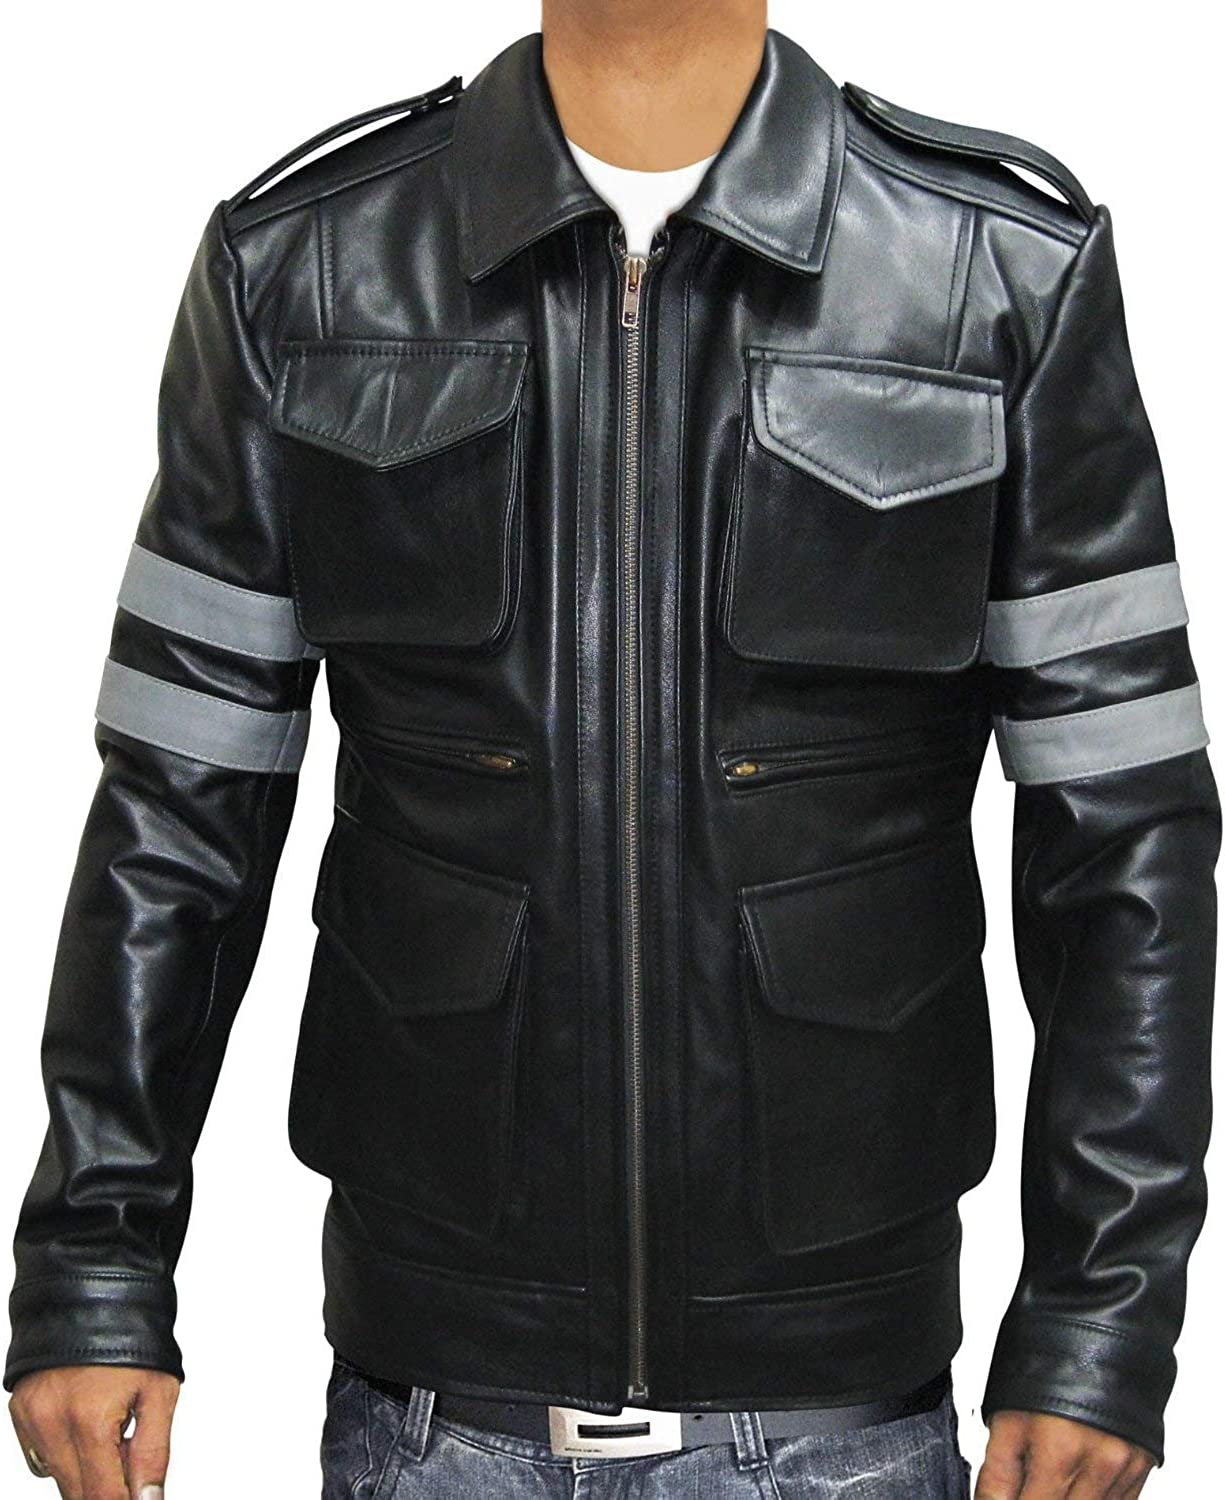 Resident Evil 6 Leon S Kennedy Black Cow Hide Leather Jacket